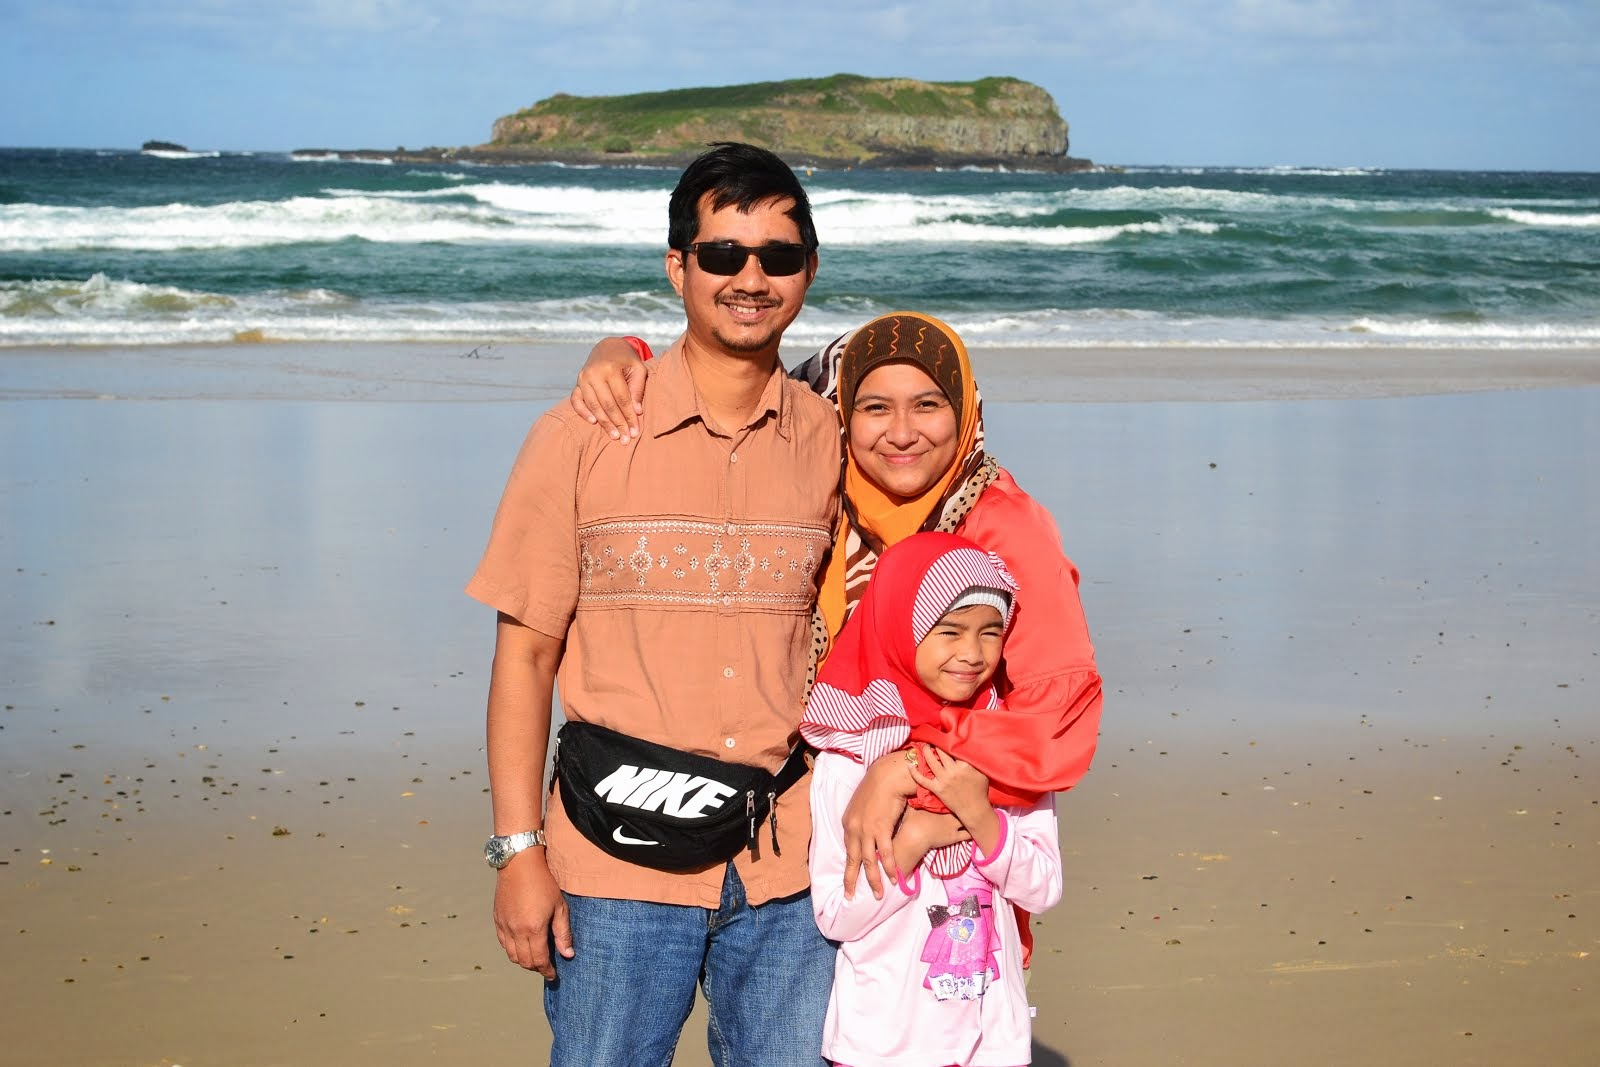 Me and my family @ New South Wales, Australia